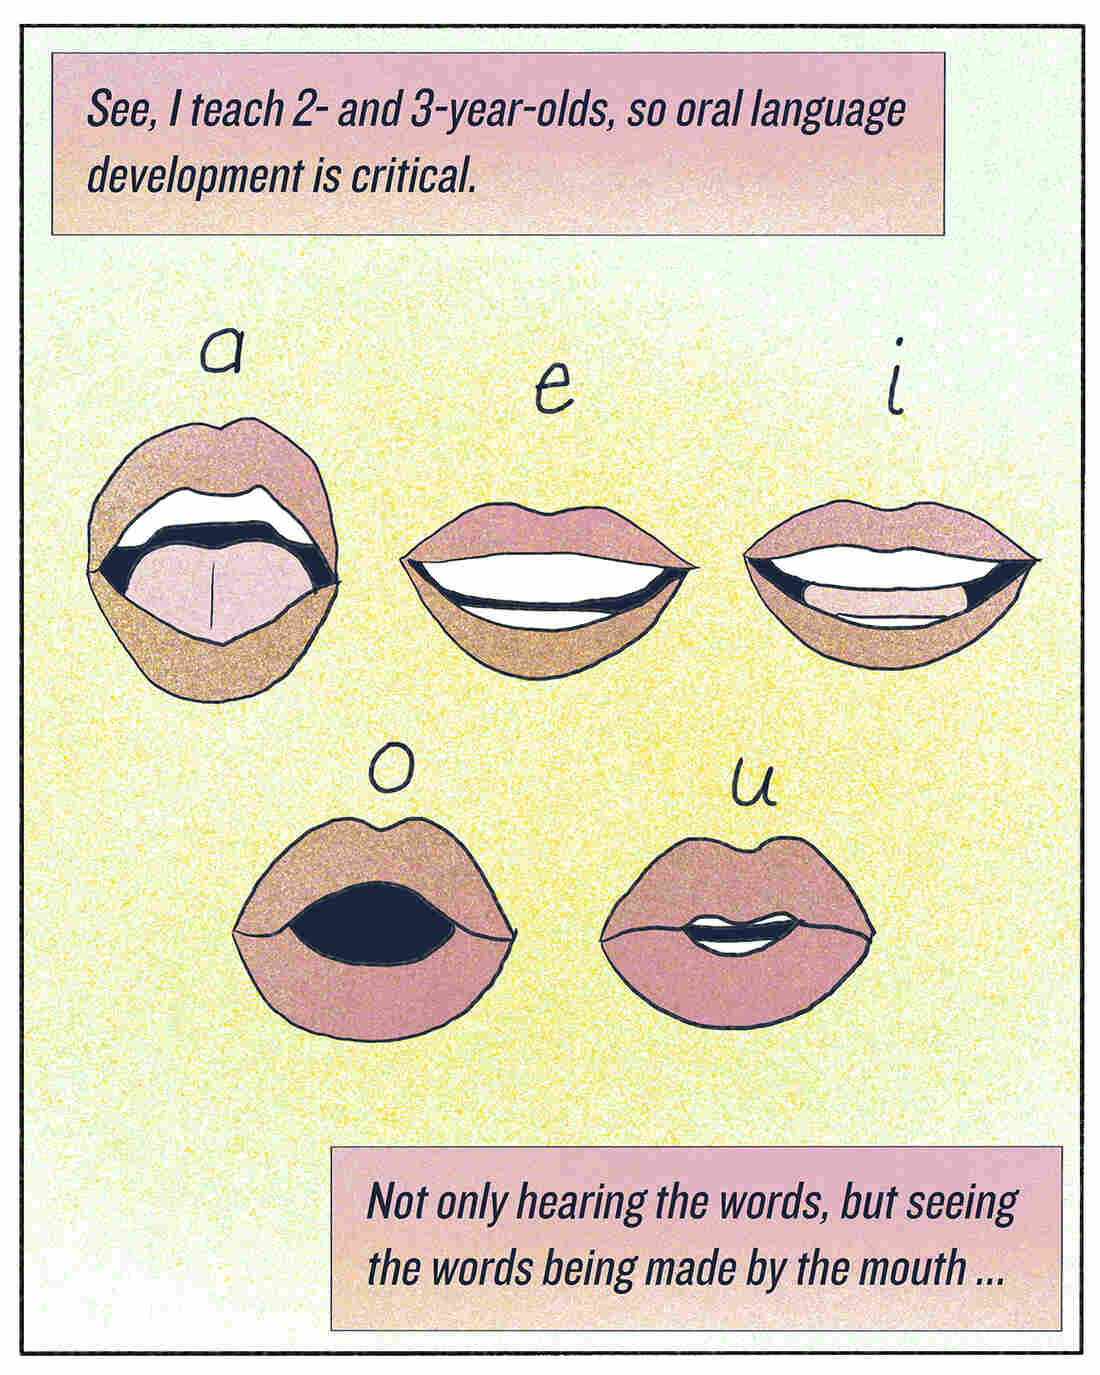 """""""See, I teach 2- and 3-year-olds, so oral language development is critical. Not only hearing the words, but seeing the words being made by the mouth ..."""""""